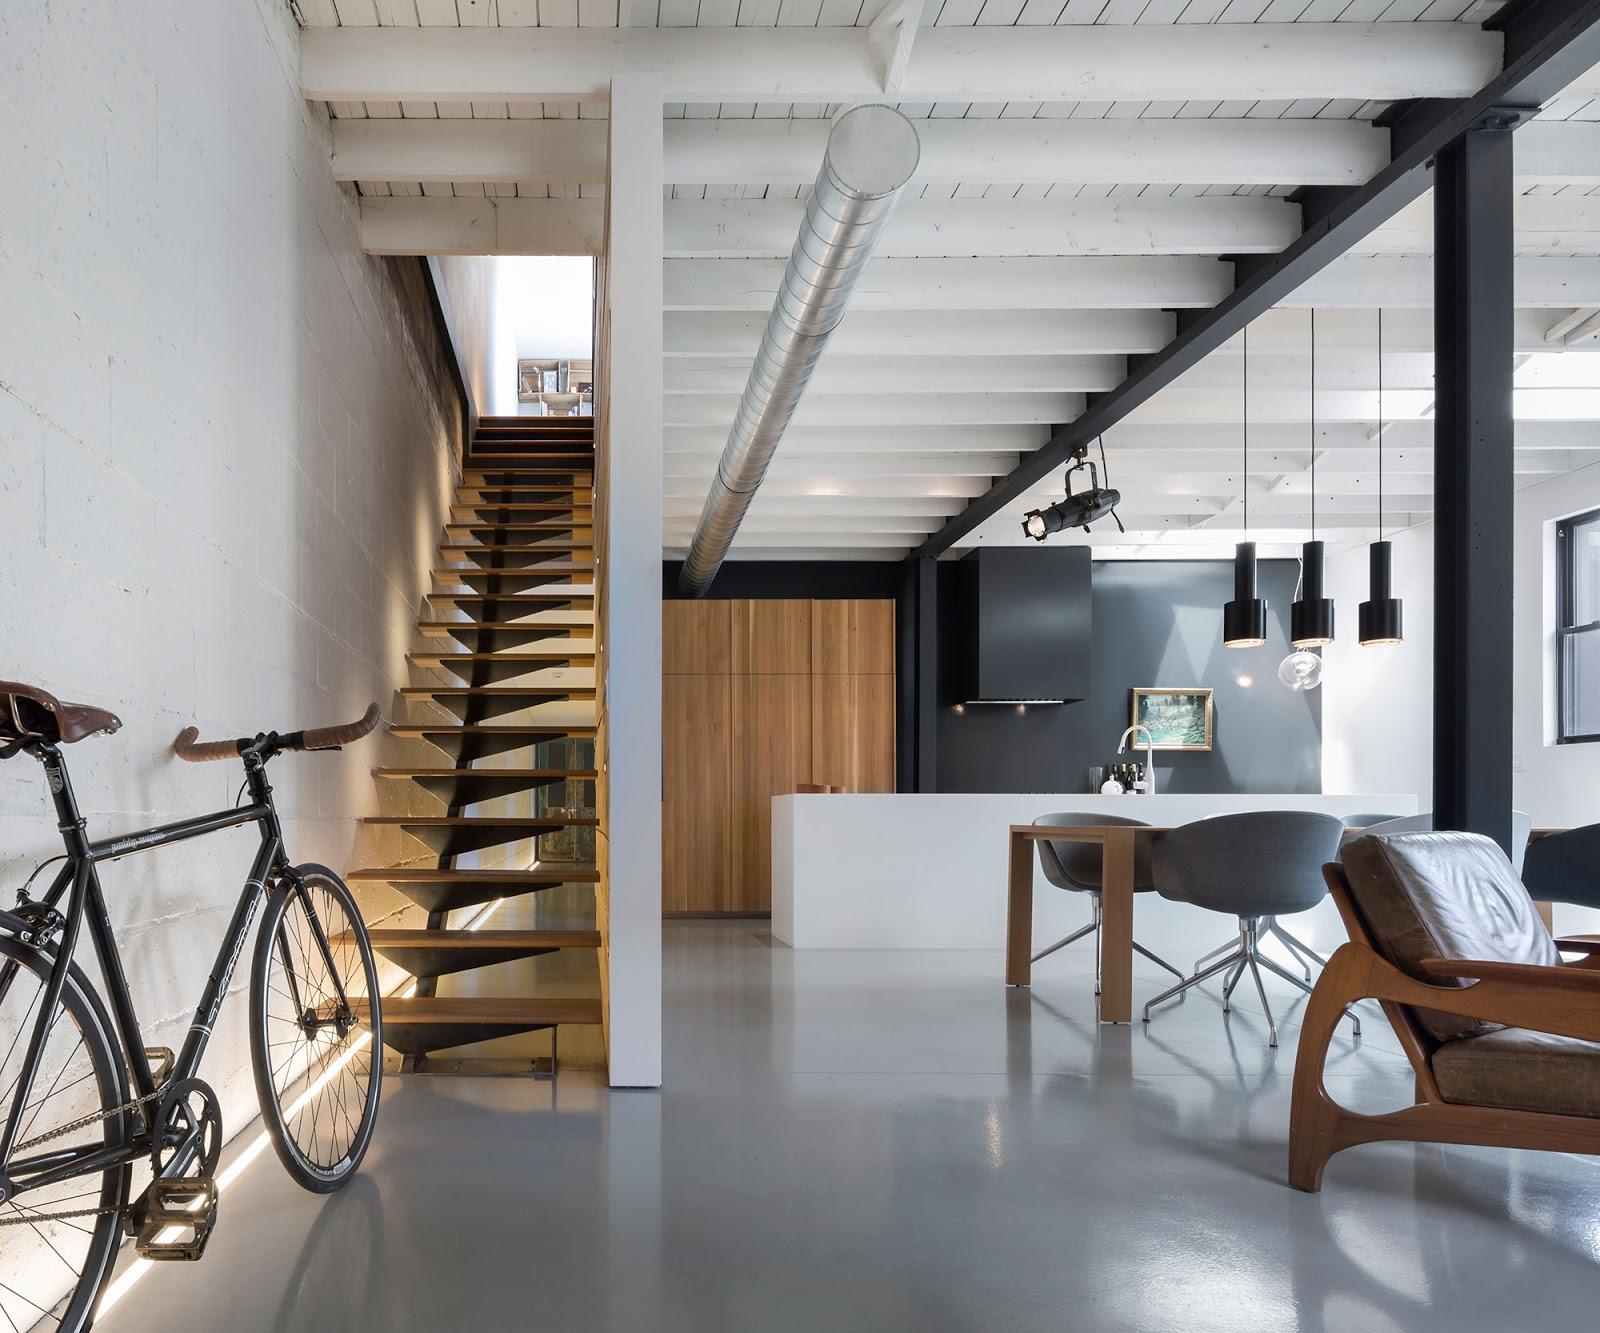 Arredare casa in stile moderno open space